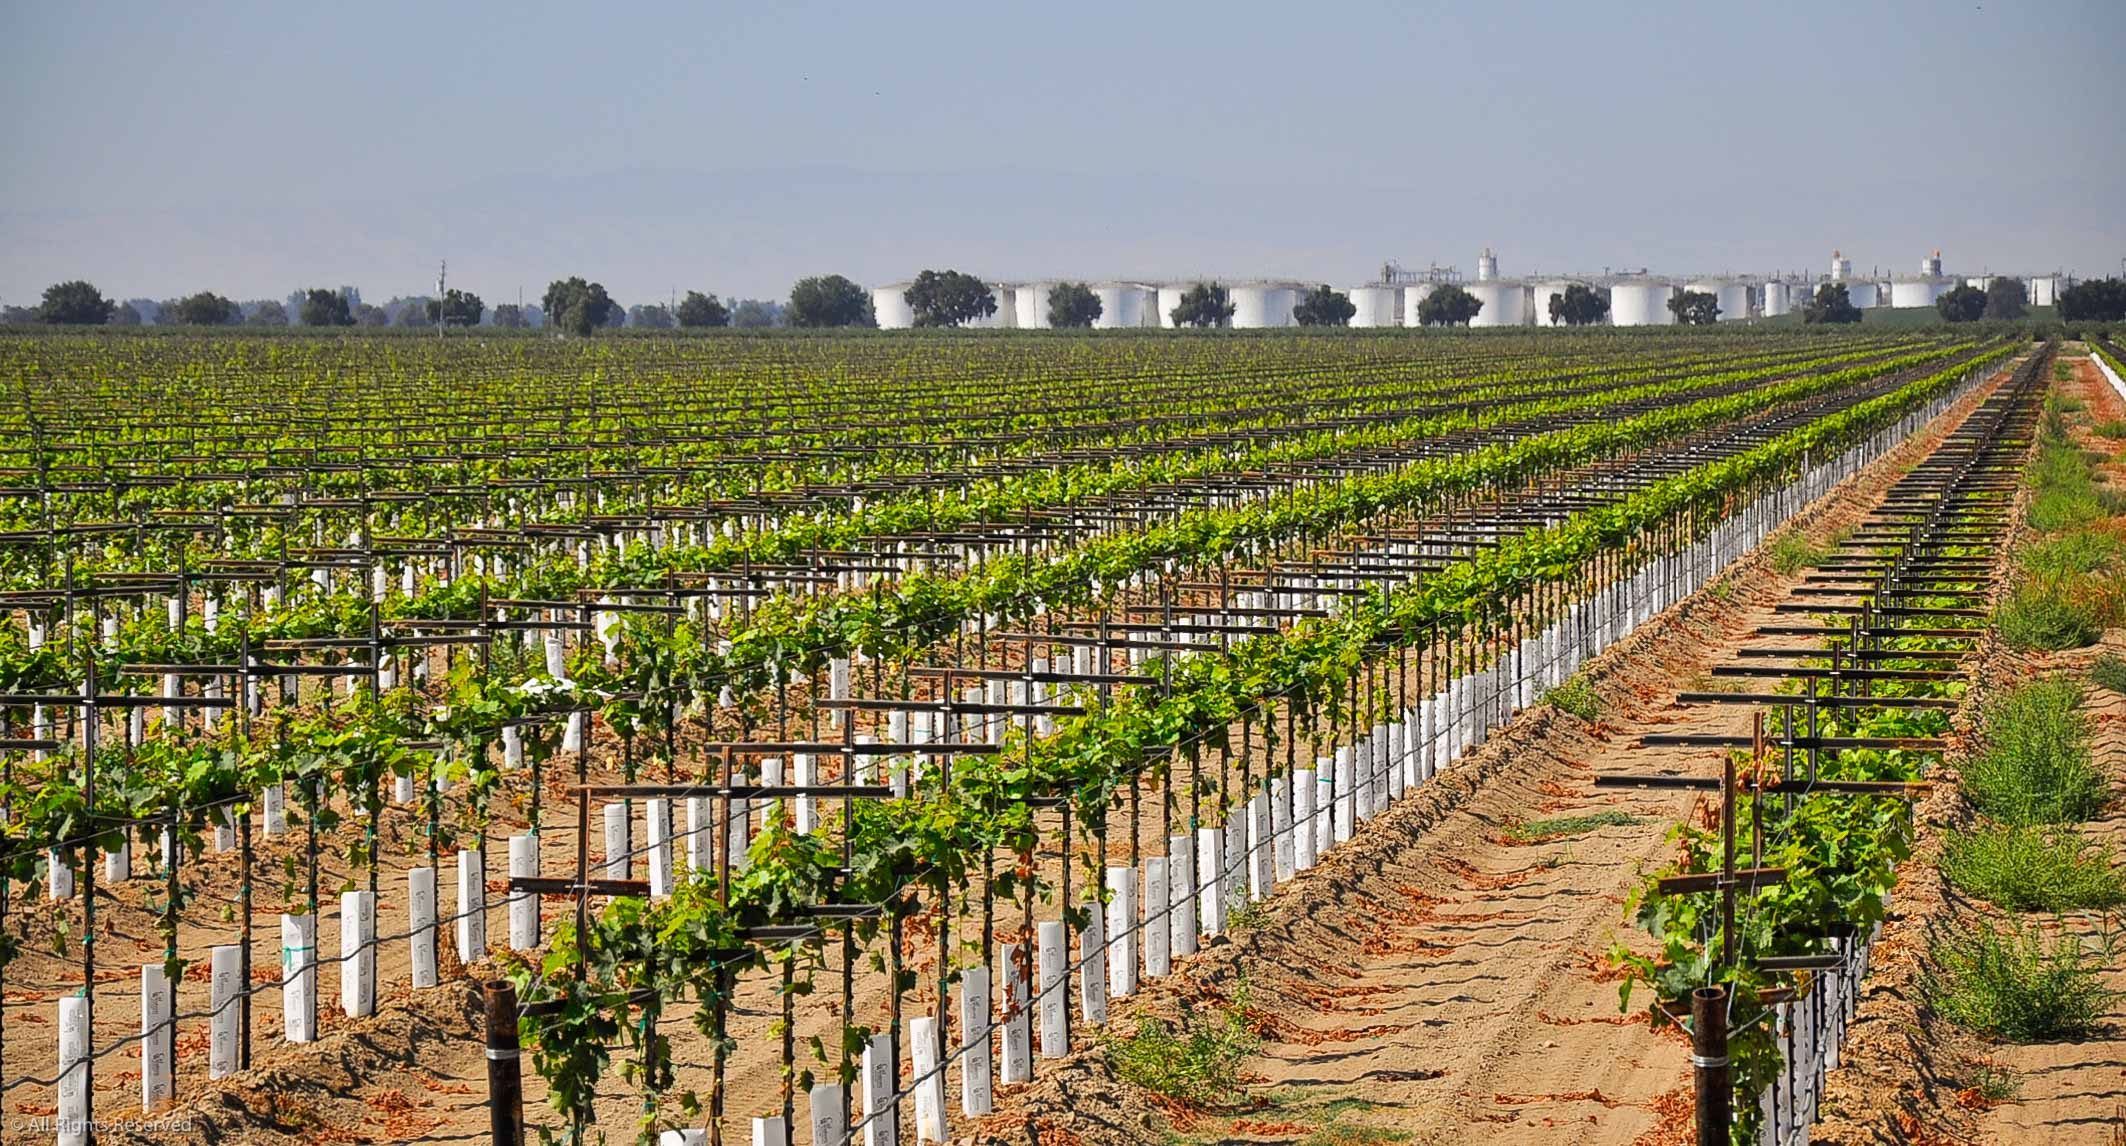 Vineyard at Gallo Manufacturing Plant in Livingston California